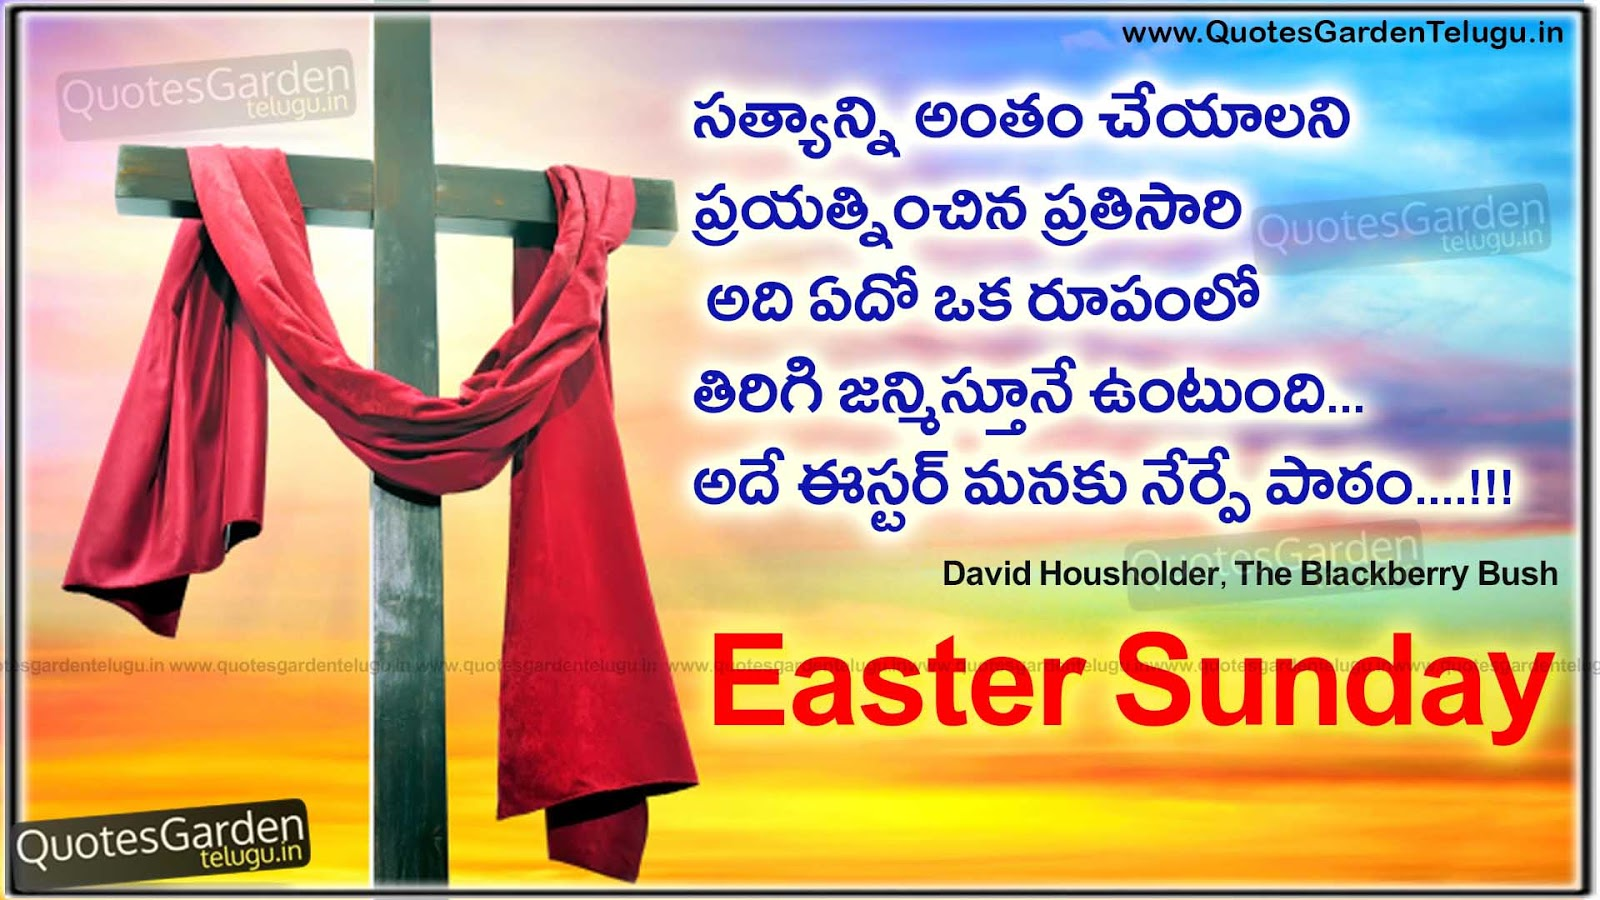 Easter Sunday Telugu Quotes Greetings Messages Quotes Garden